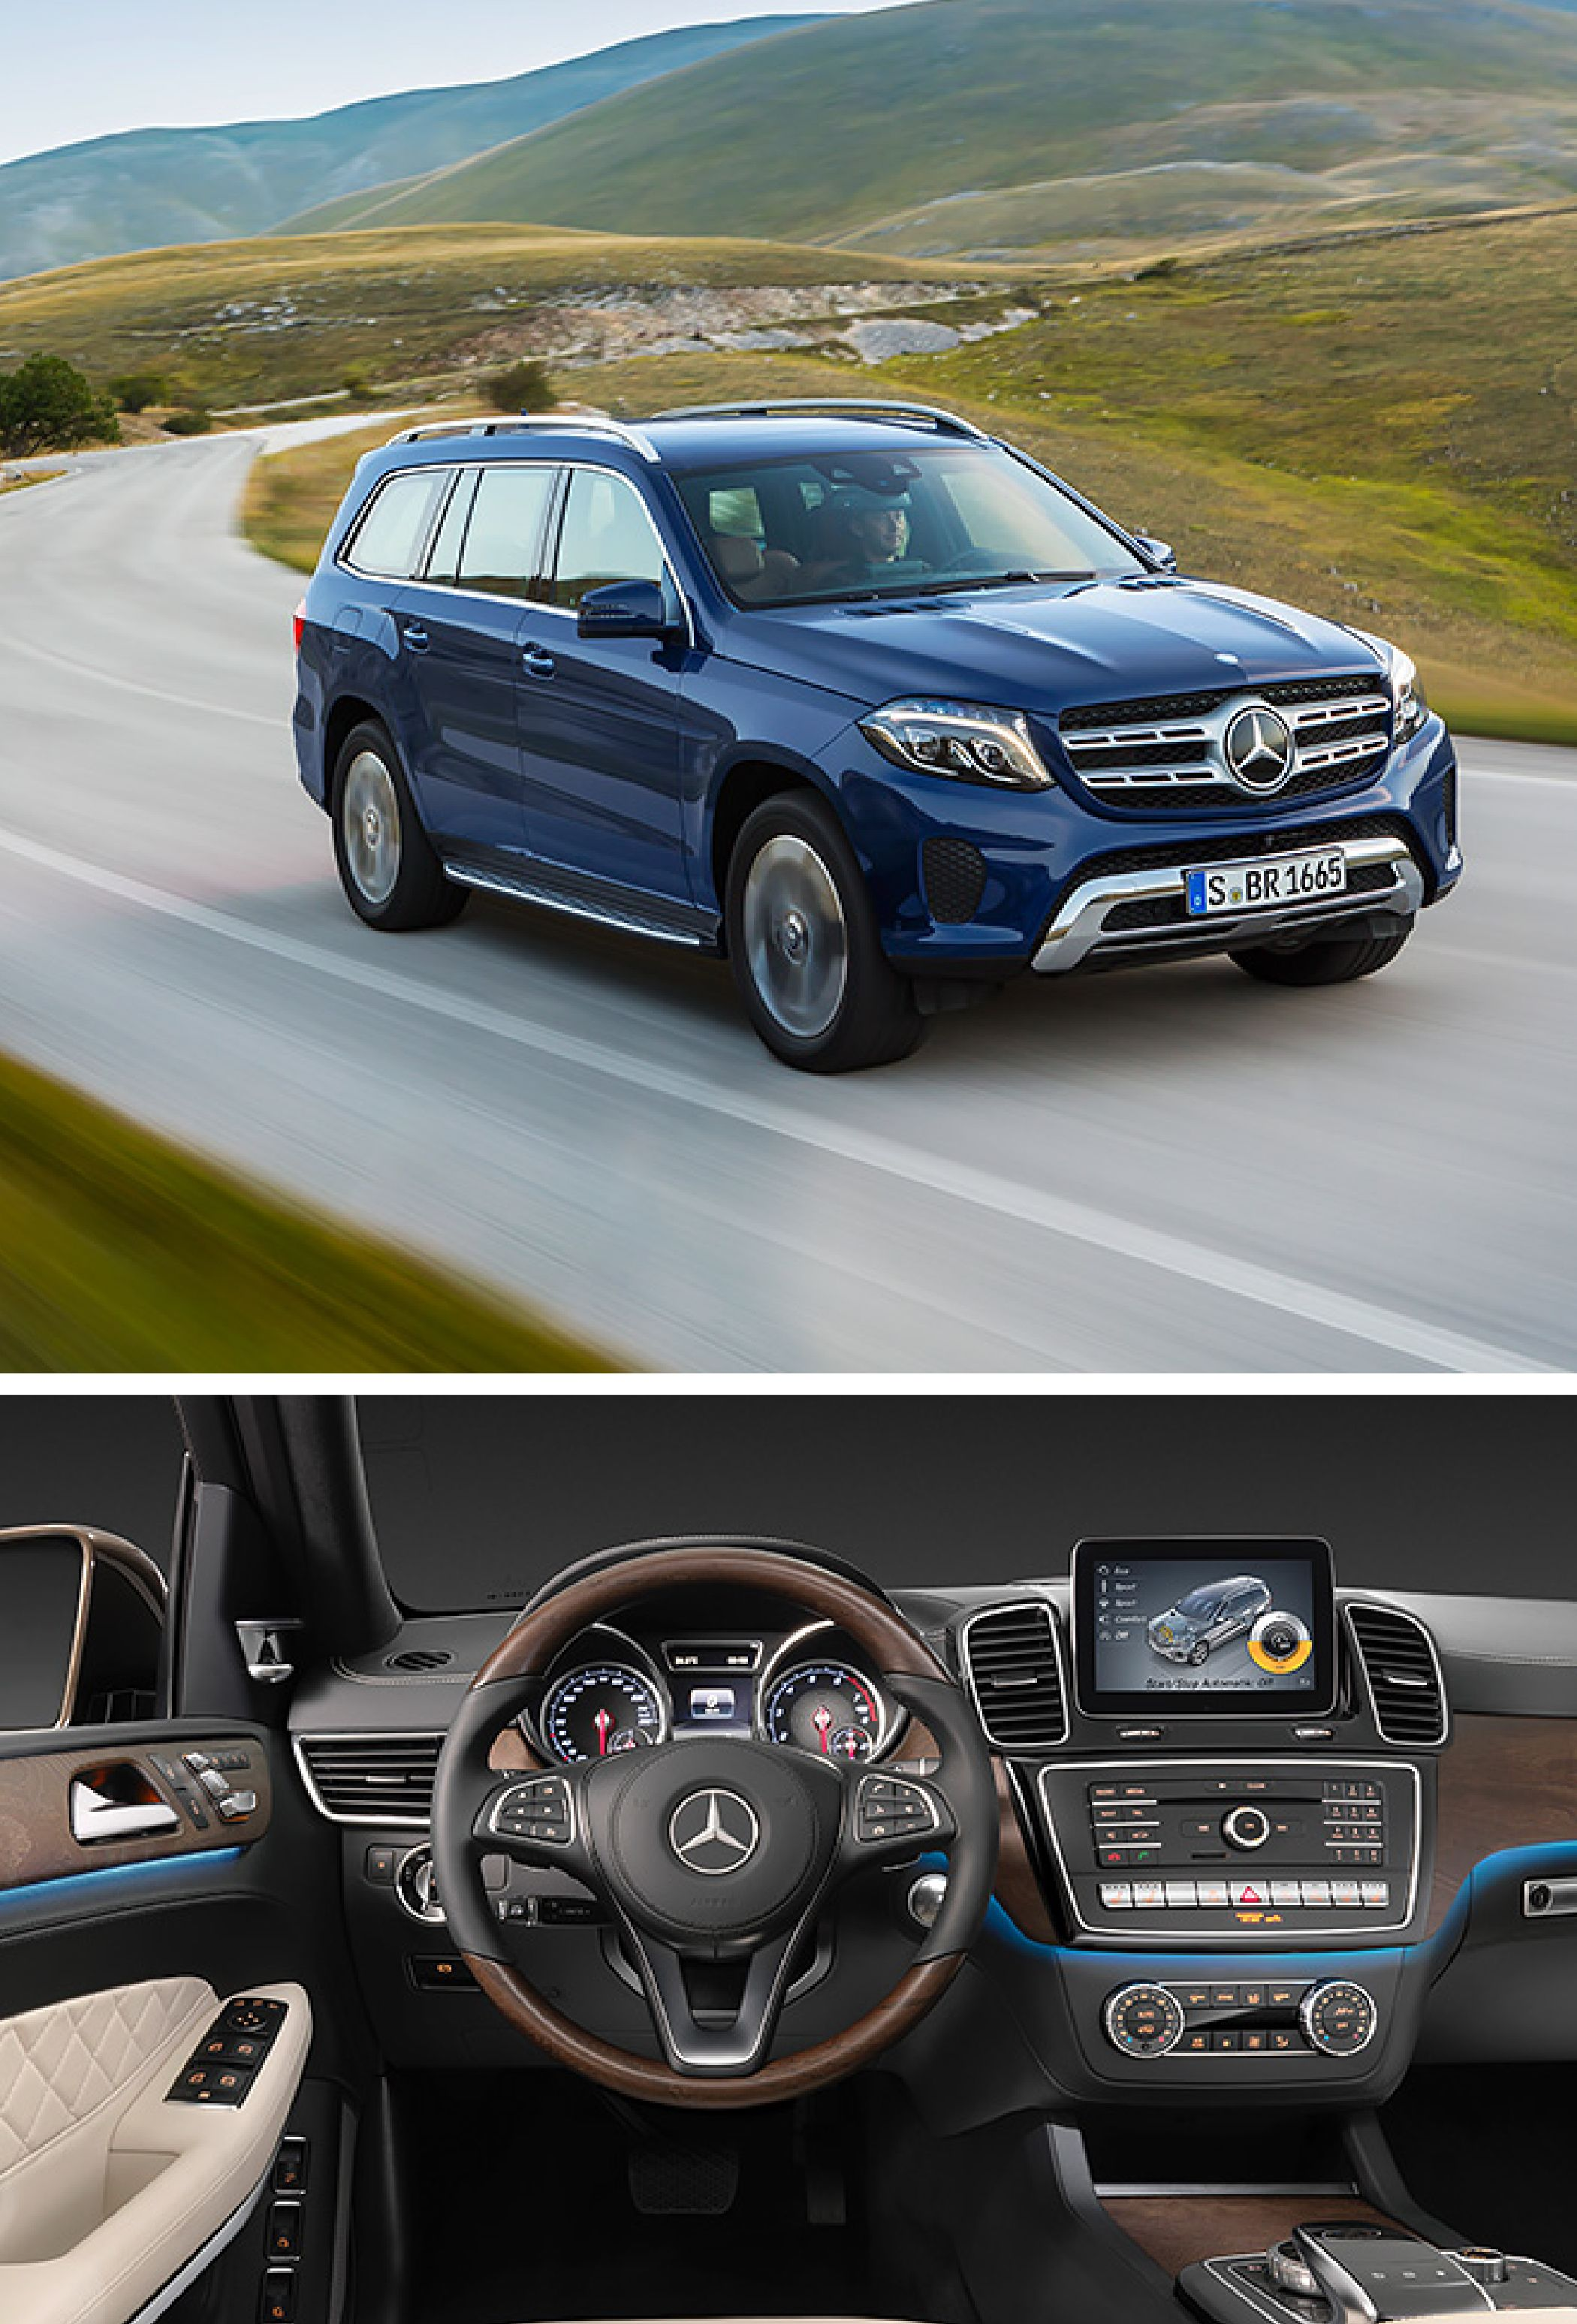 """The GL becomes the GLS. This Mercedes-Benz is setting standards in the world of the SUV as it confirms its position as the """"S-Class among SUVs."""""""